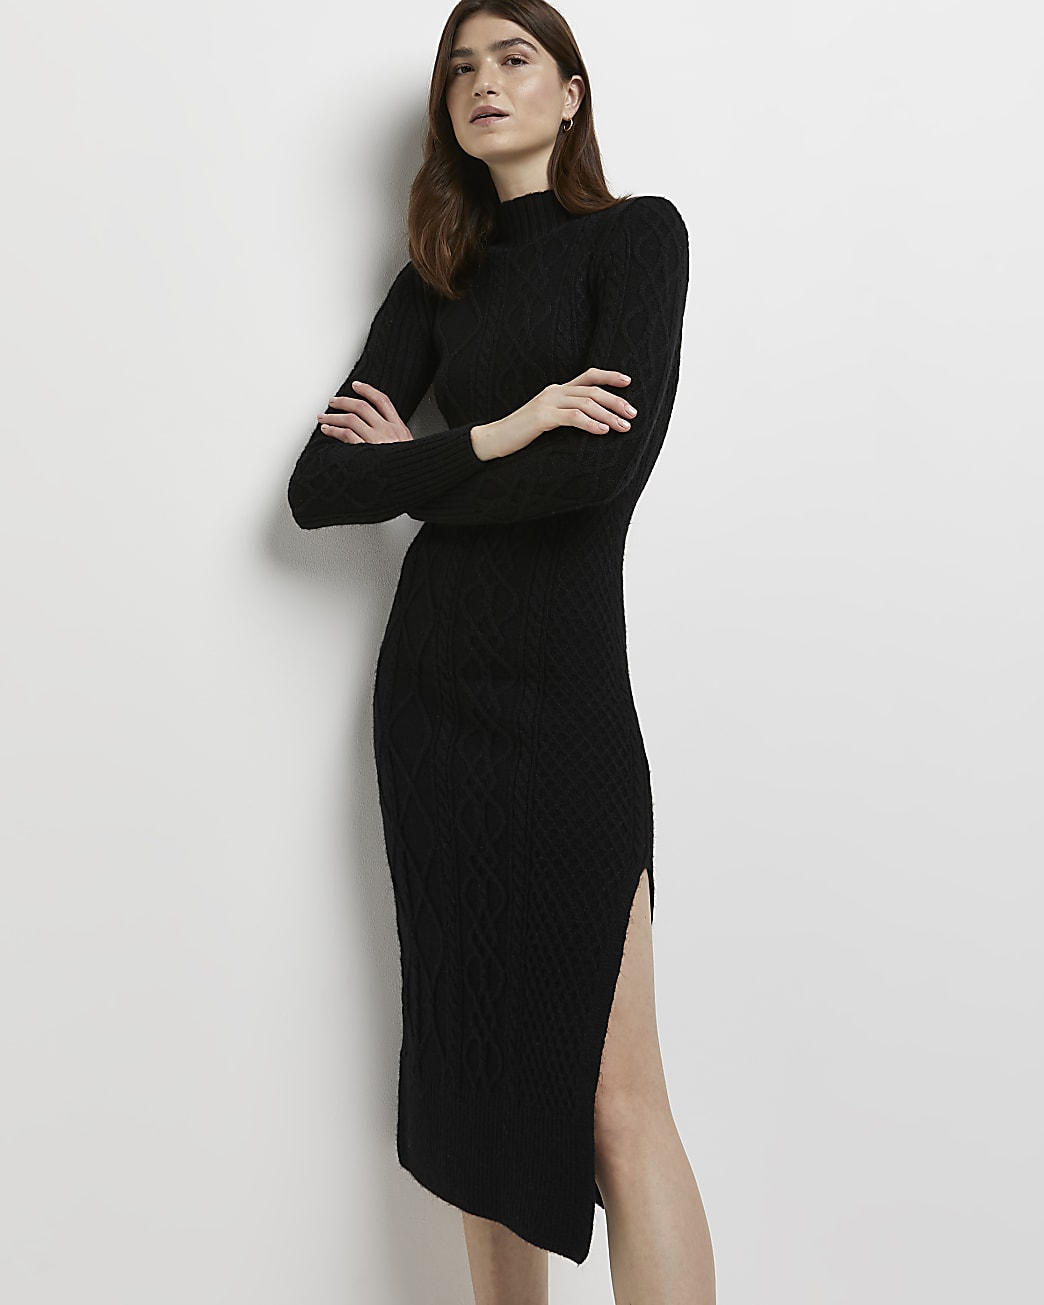 Black chunky cable knit bodycon dress